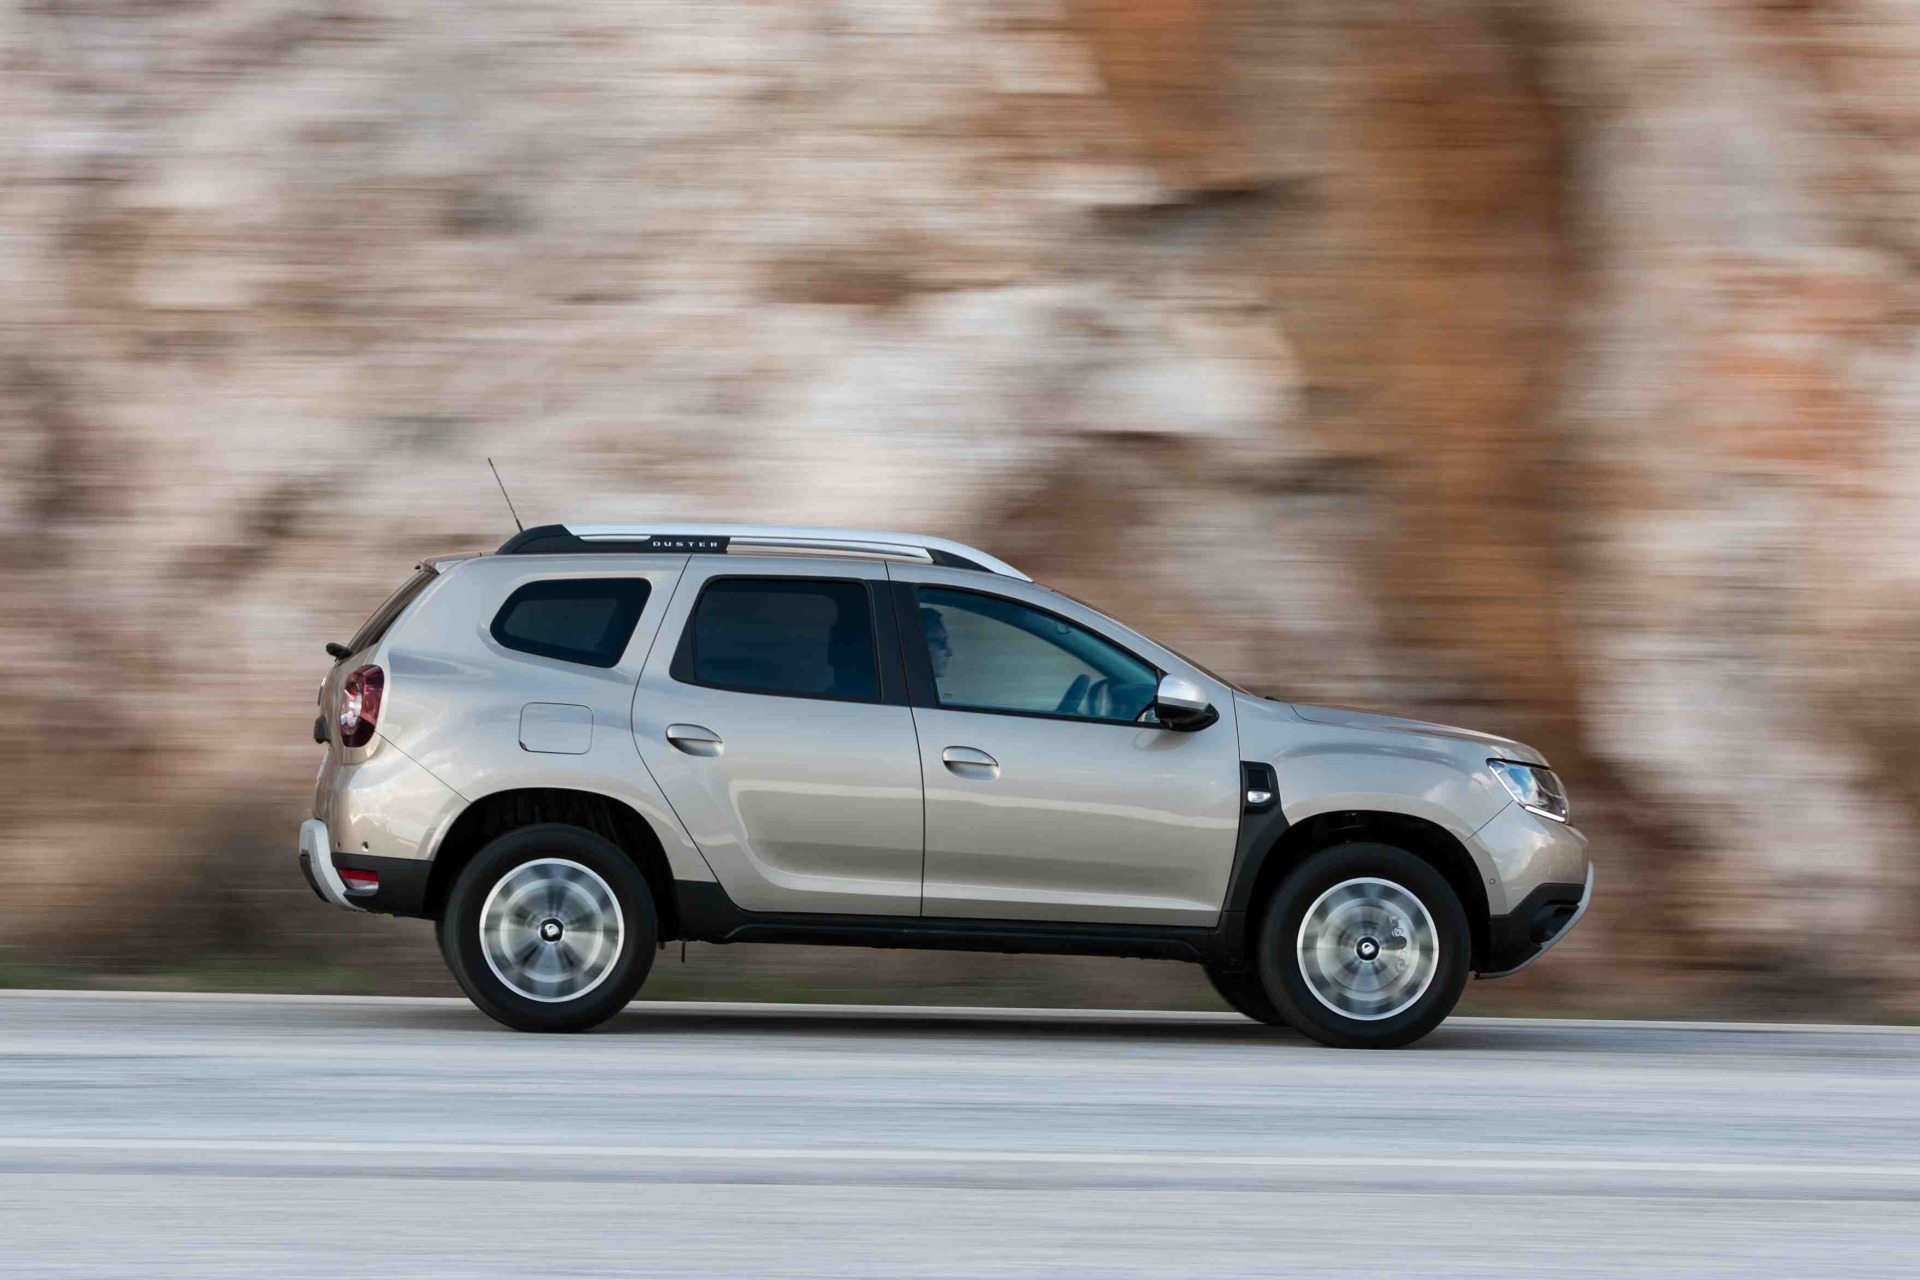 essai dacia duster 2018 notre avis sur le nouveau duster dci 110 photo 5 l 39 argus. Black Bedroom Furniture Sets. Home Design Ideas